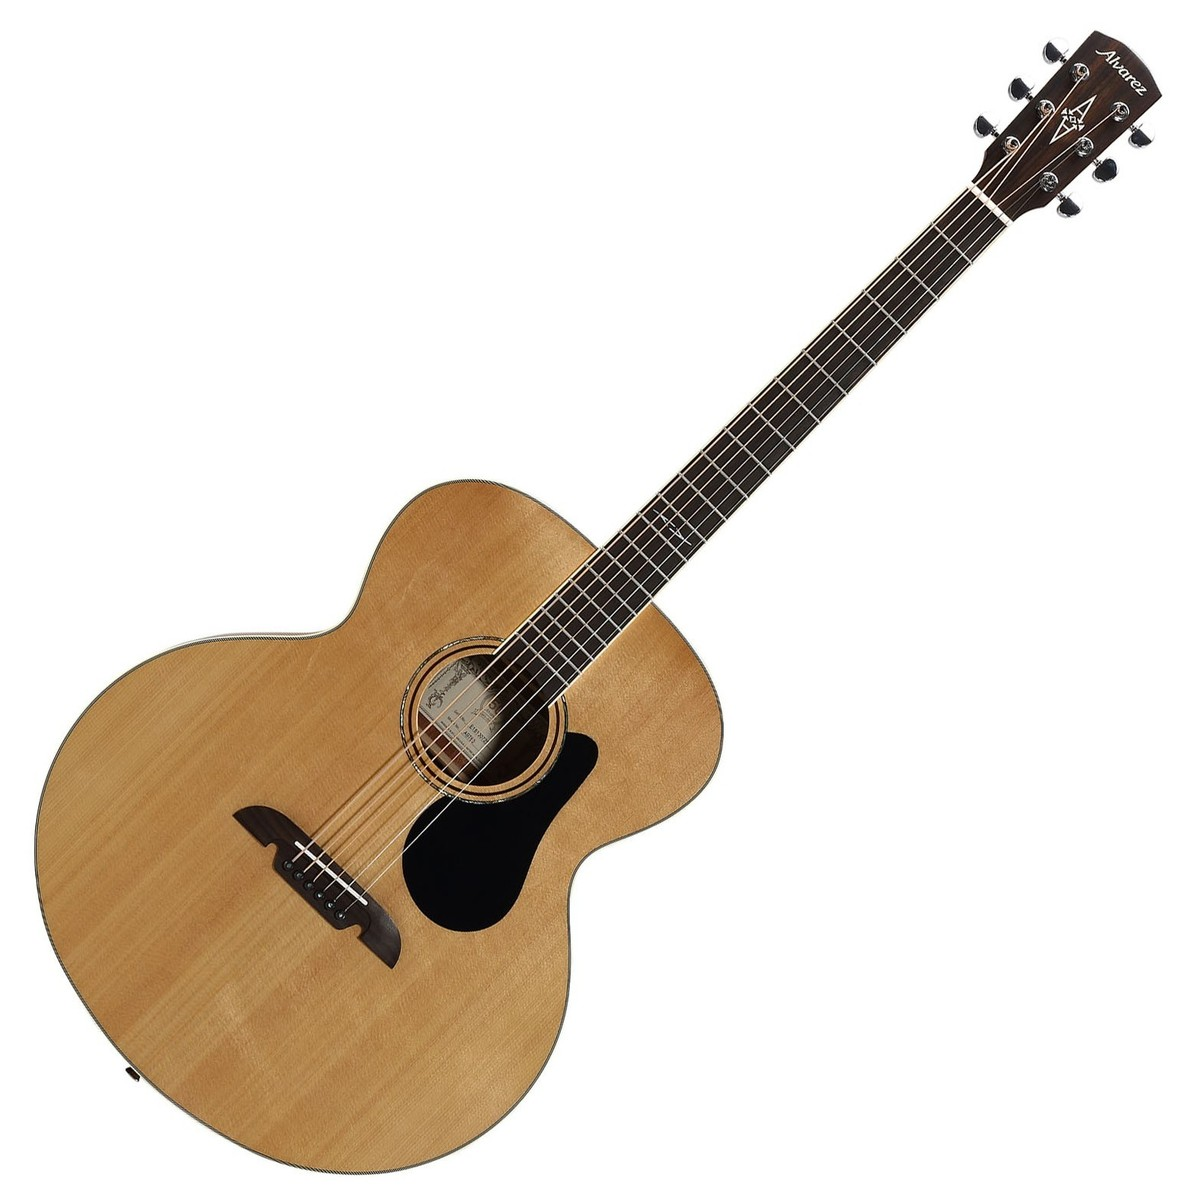 Image of Alvarez ABT60 Baritone Acoustic Guitar (2016)